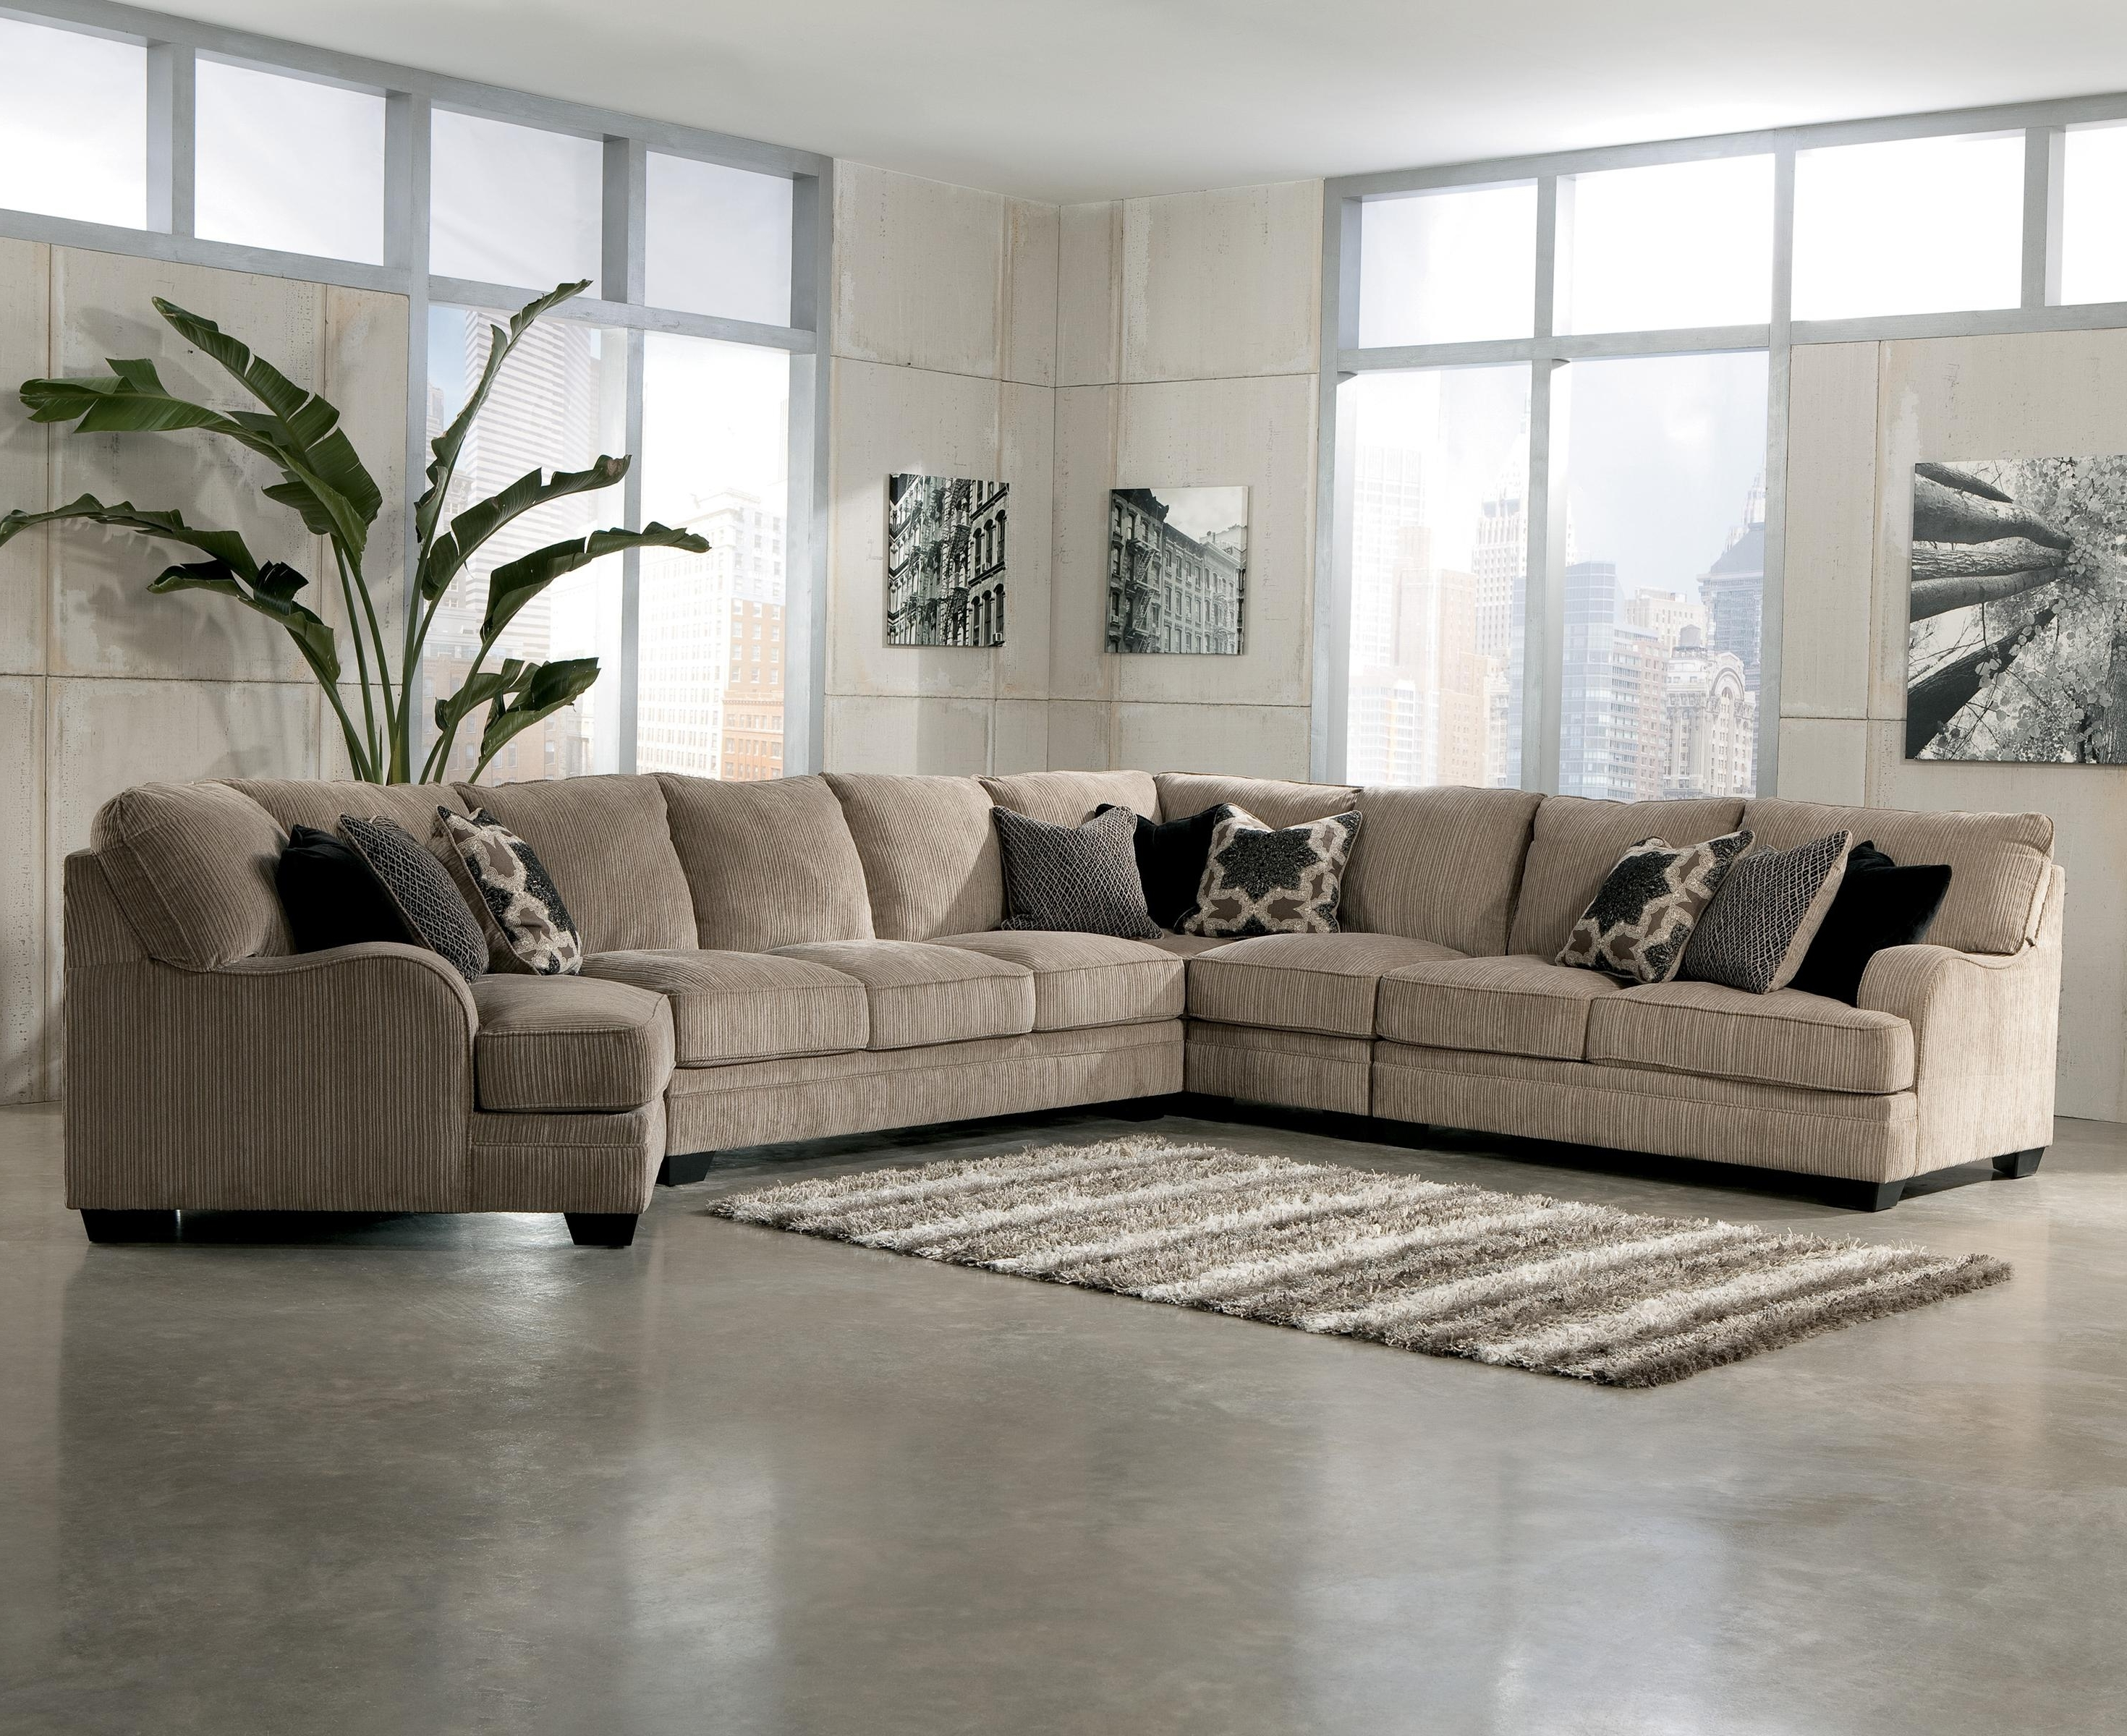 2017 Comfortable Cuddler Sofa For Elegant Living Room Sofas Design Inside Large Comfortable Sectional Sofas (View 1 of 15)